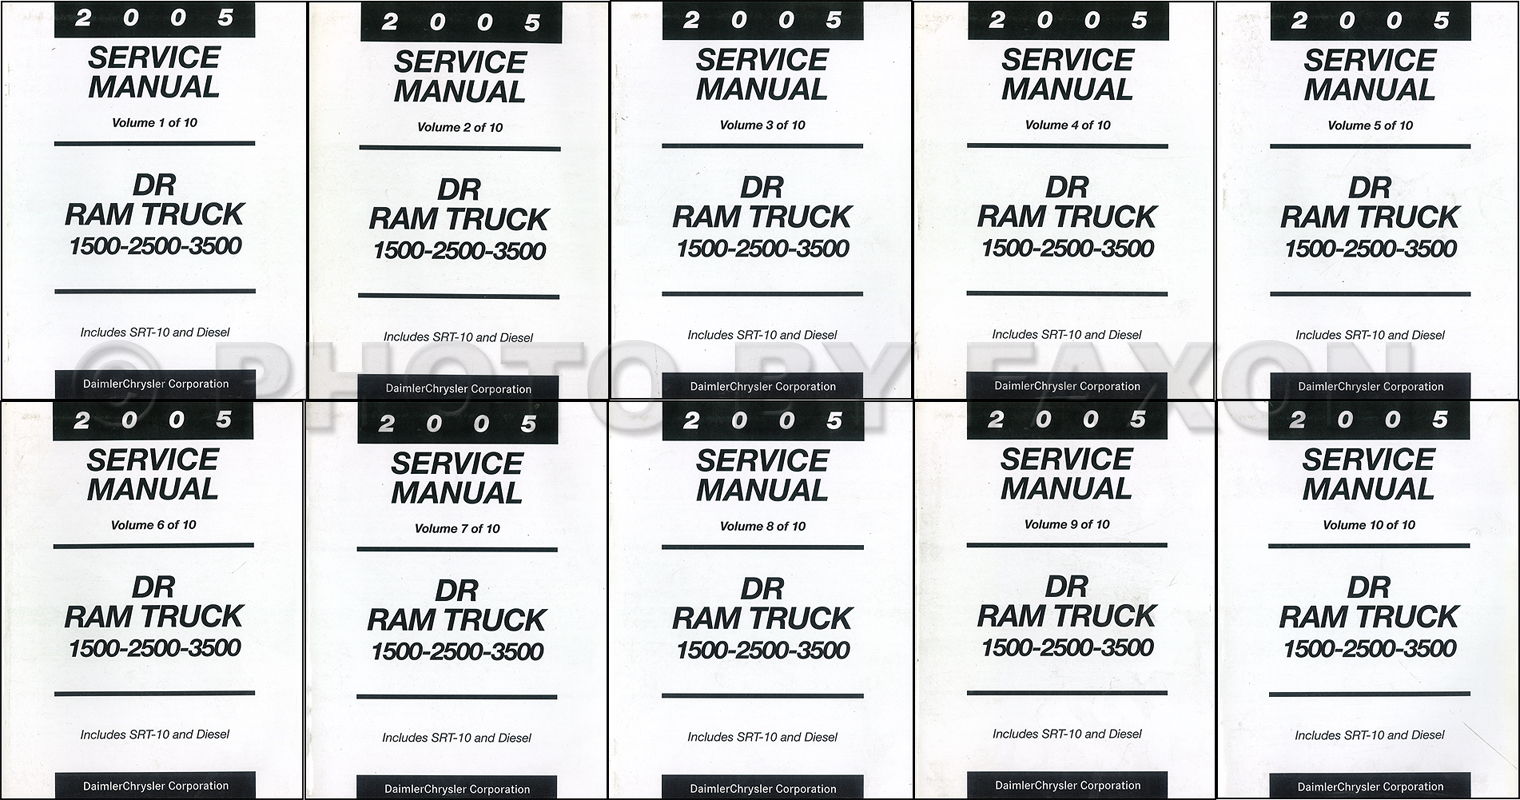 2005 Dodge Ram Truck Wiring Diagram Manual Original Diagrams Repair Shop 10 Vol Set Factory Reprint 1500 2500 3500